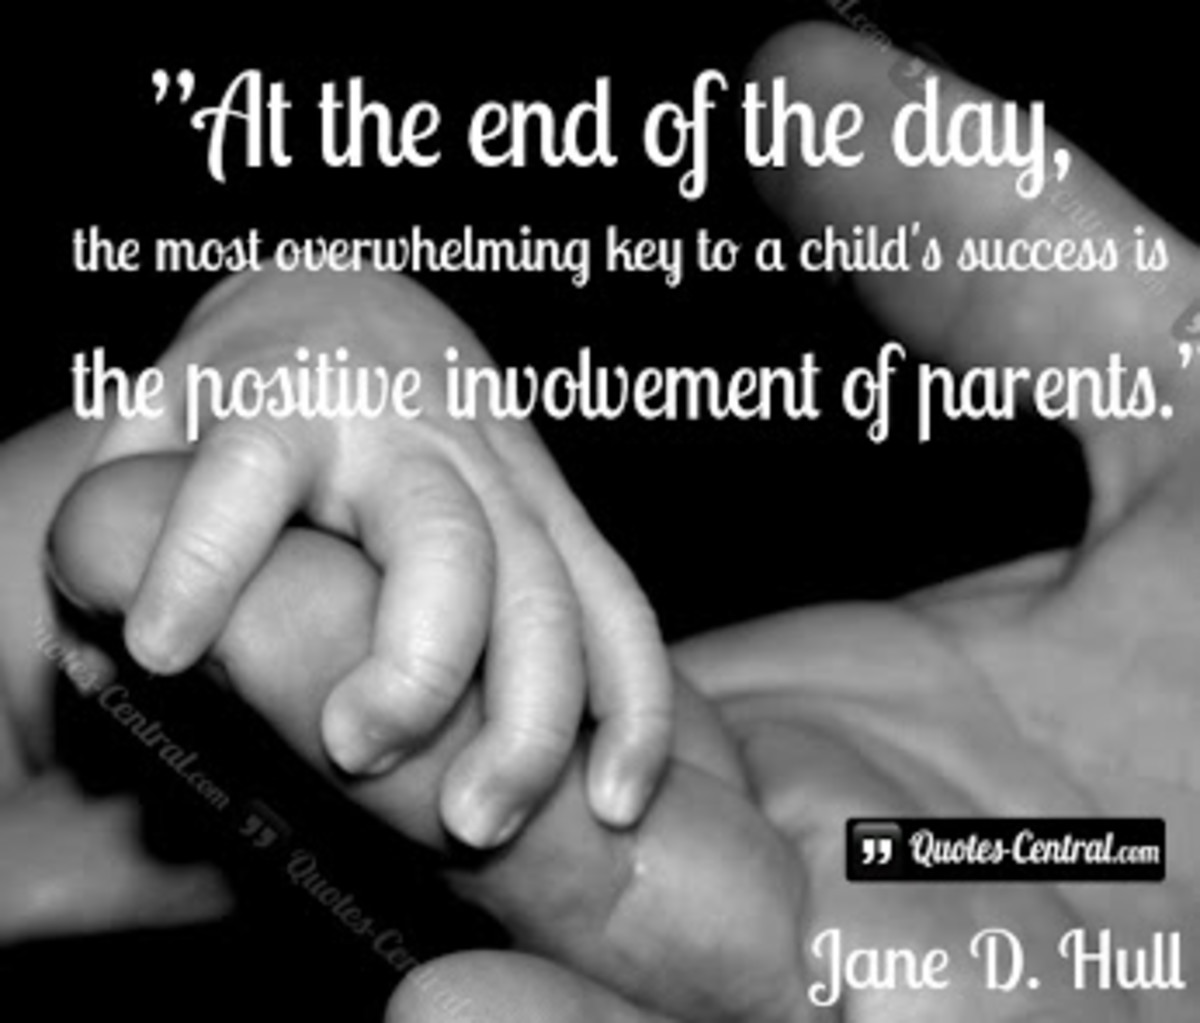 Quote from Jane D. Hull